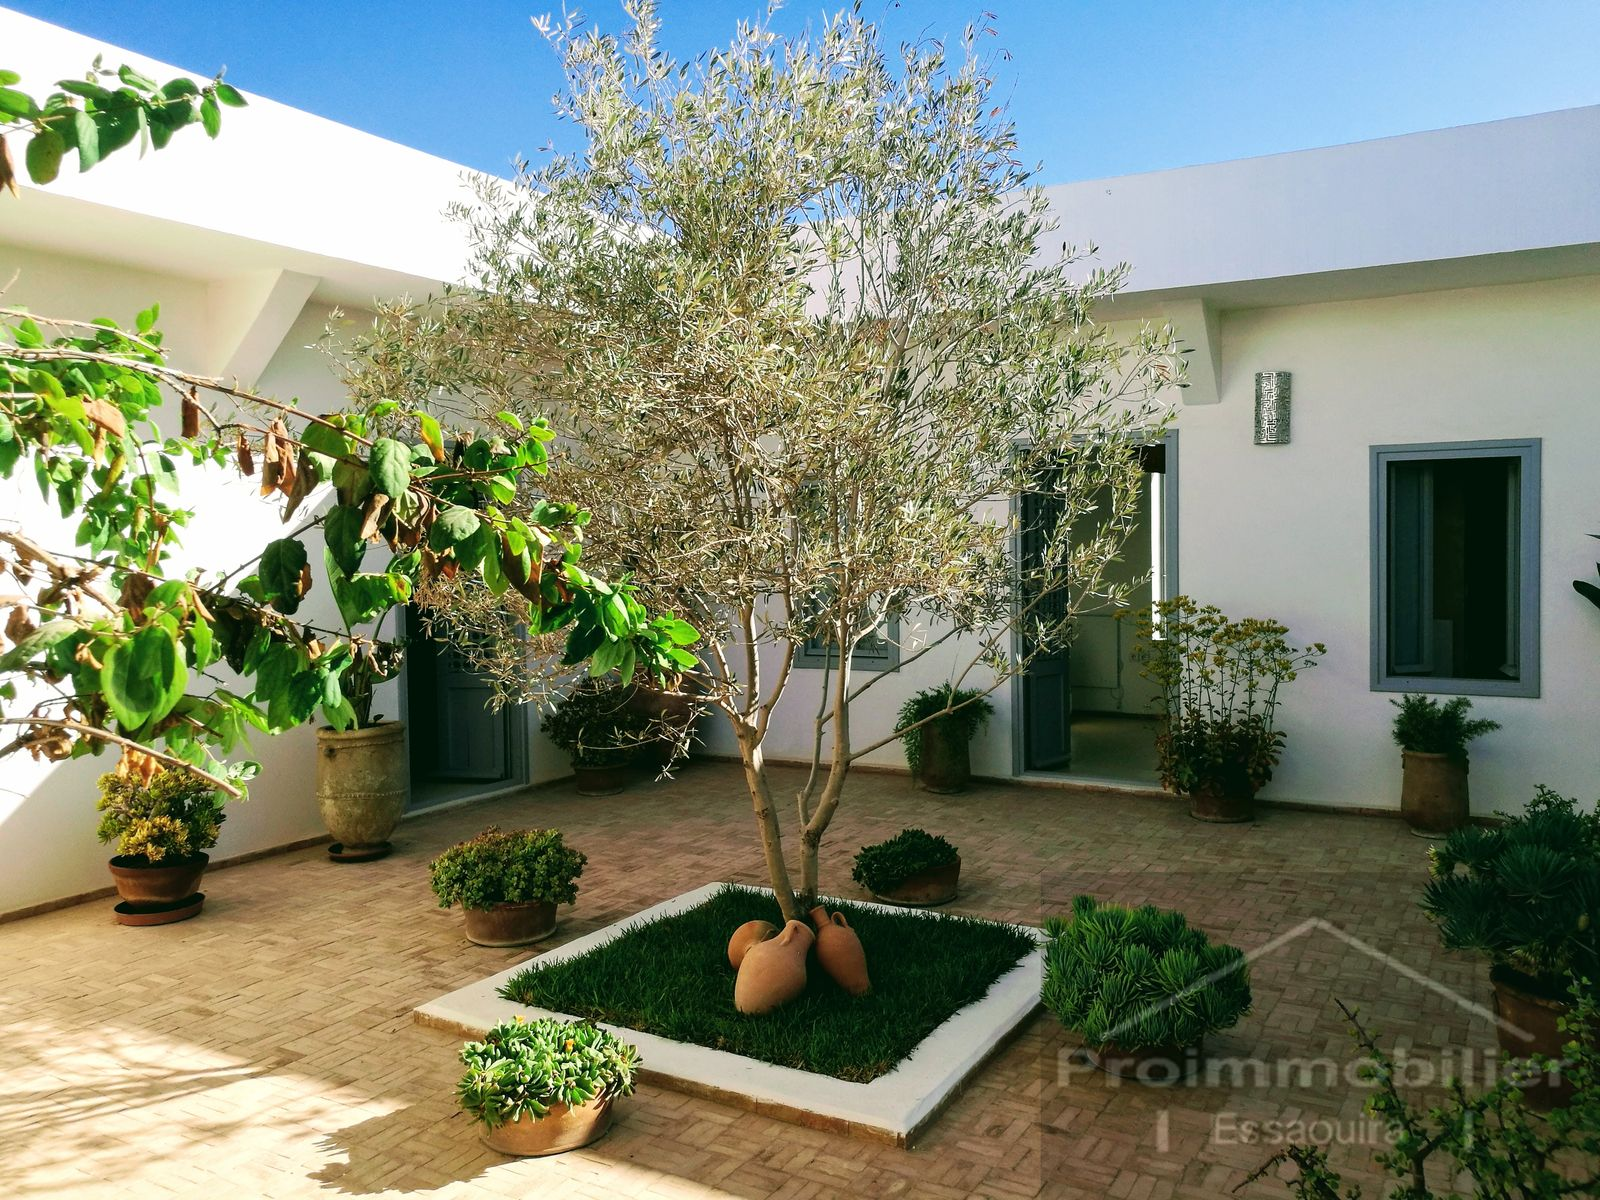 19-12-04-VV Amazing Villa 1167 m² with terrace 40 m²